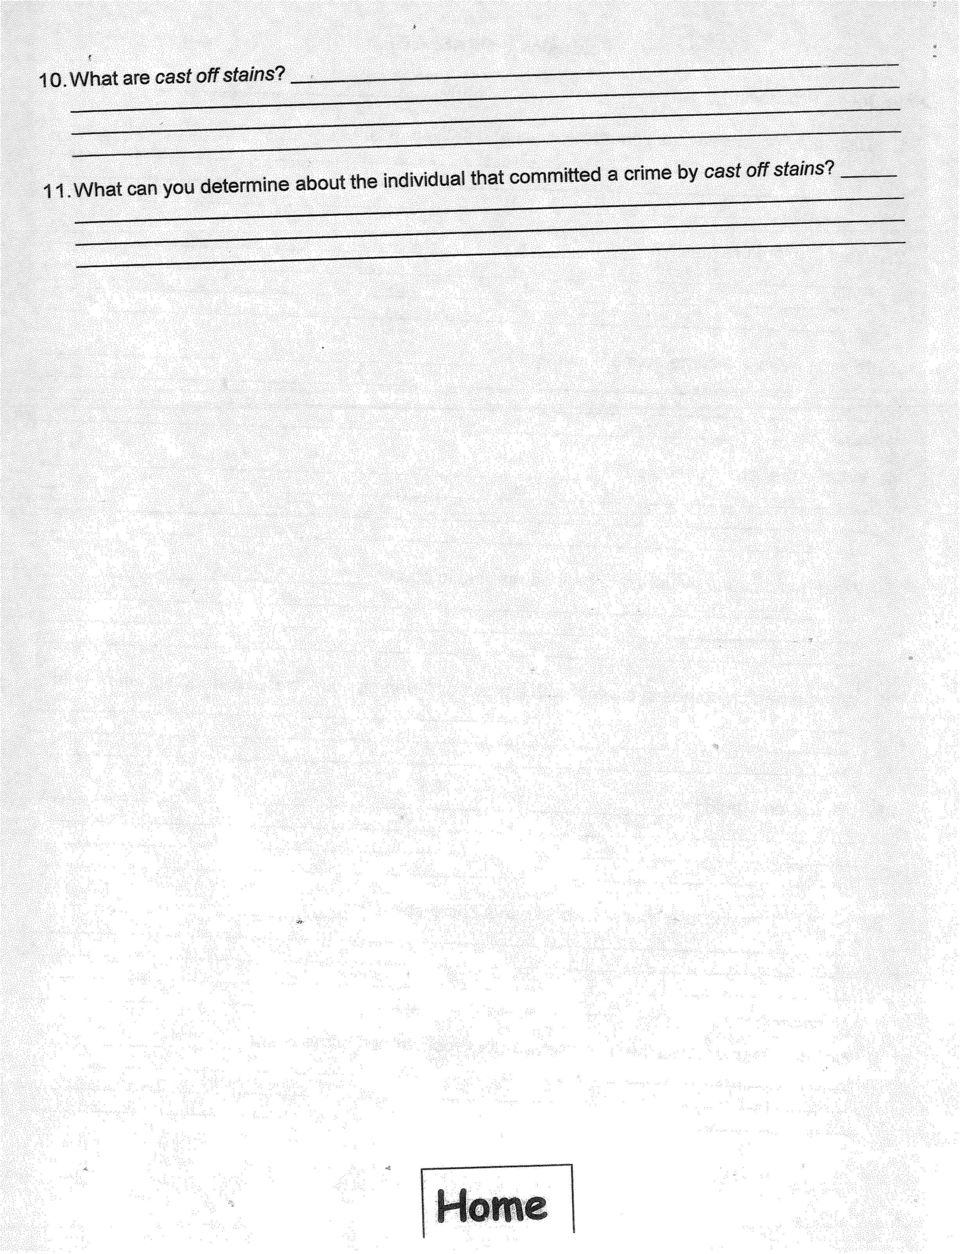 worksheet Forensic Science Worksheets forensic science worksheet templates and worksheets worksheets